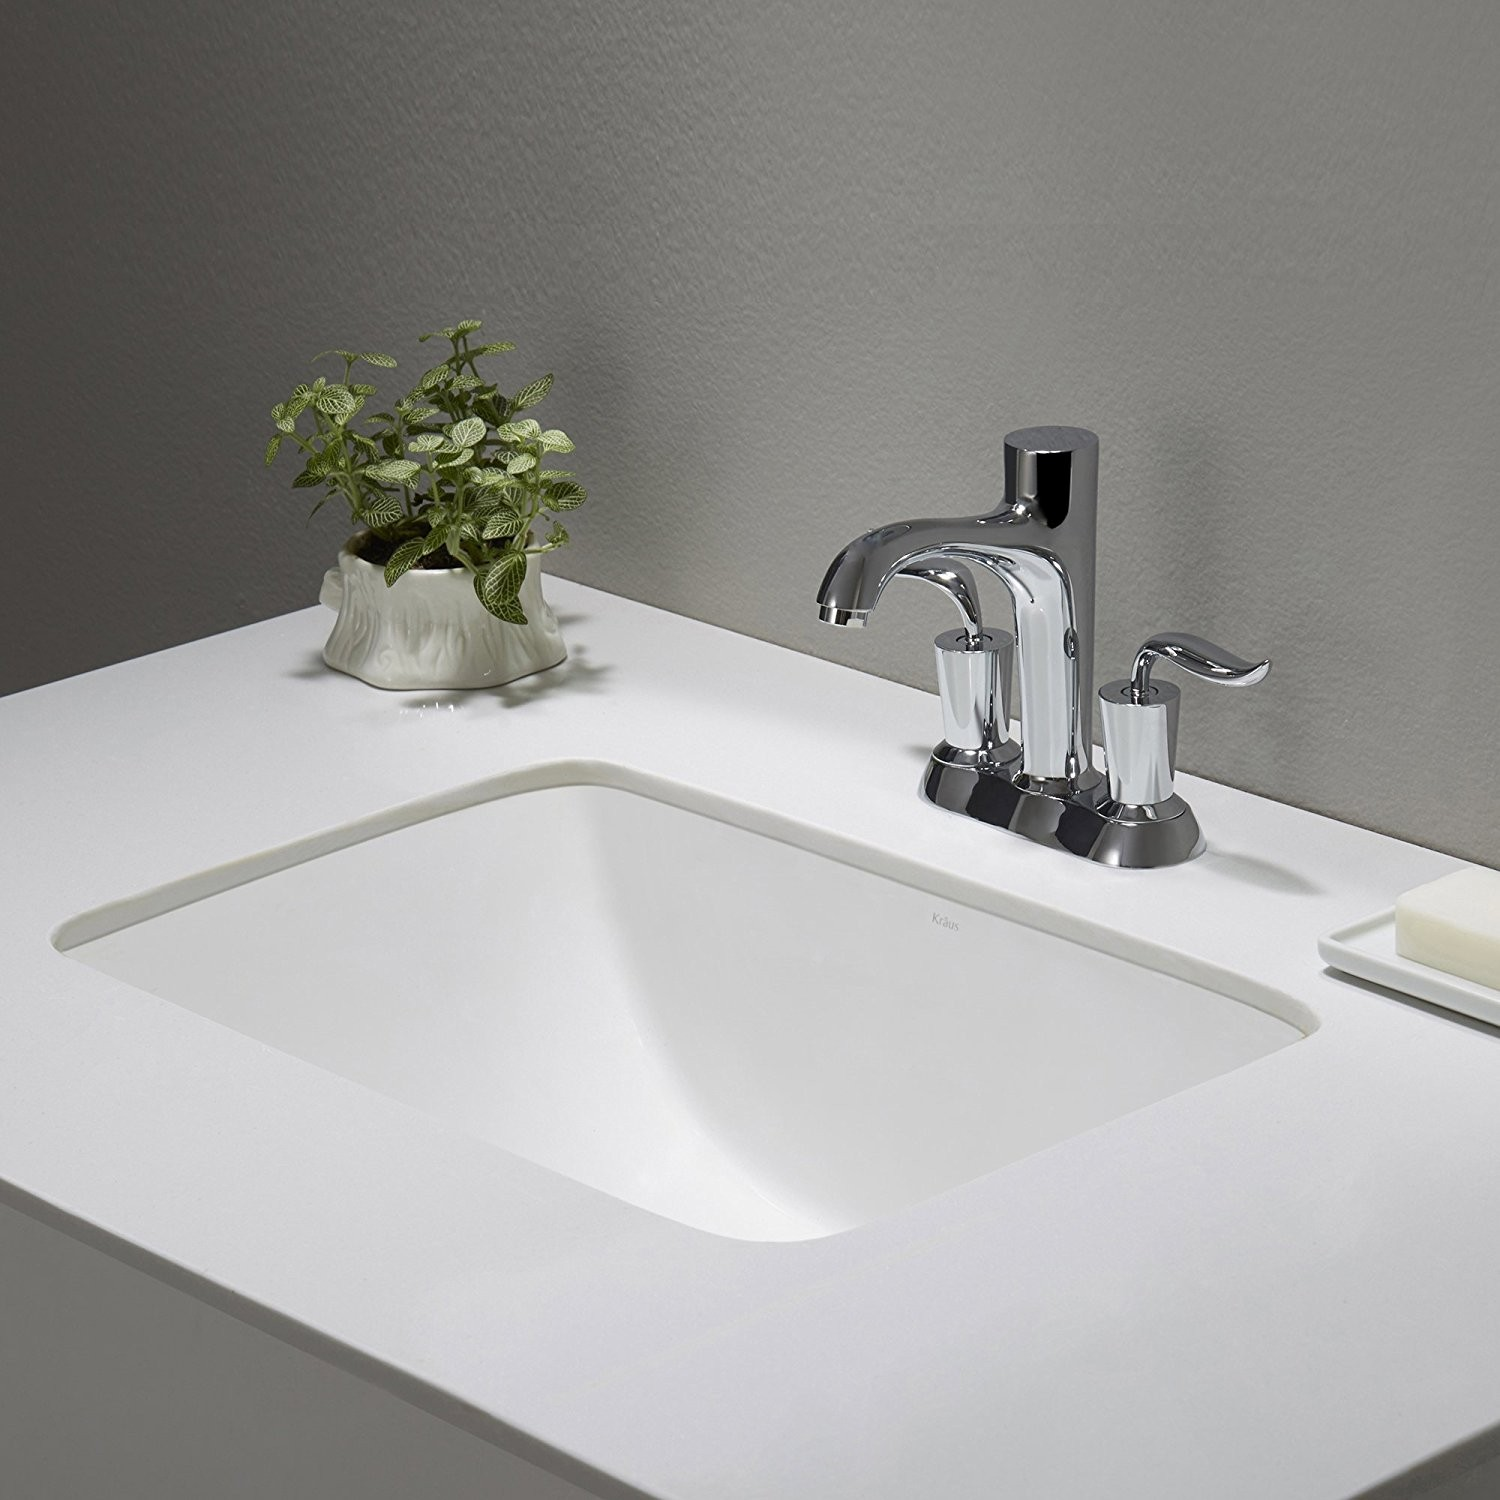 New Rectangular Bathroom Sinks Undermount Architecture ...